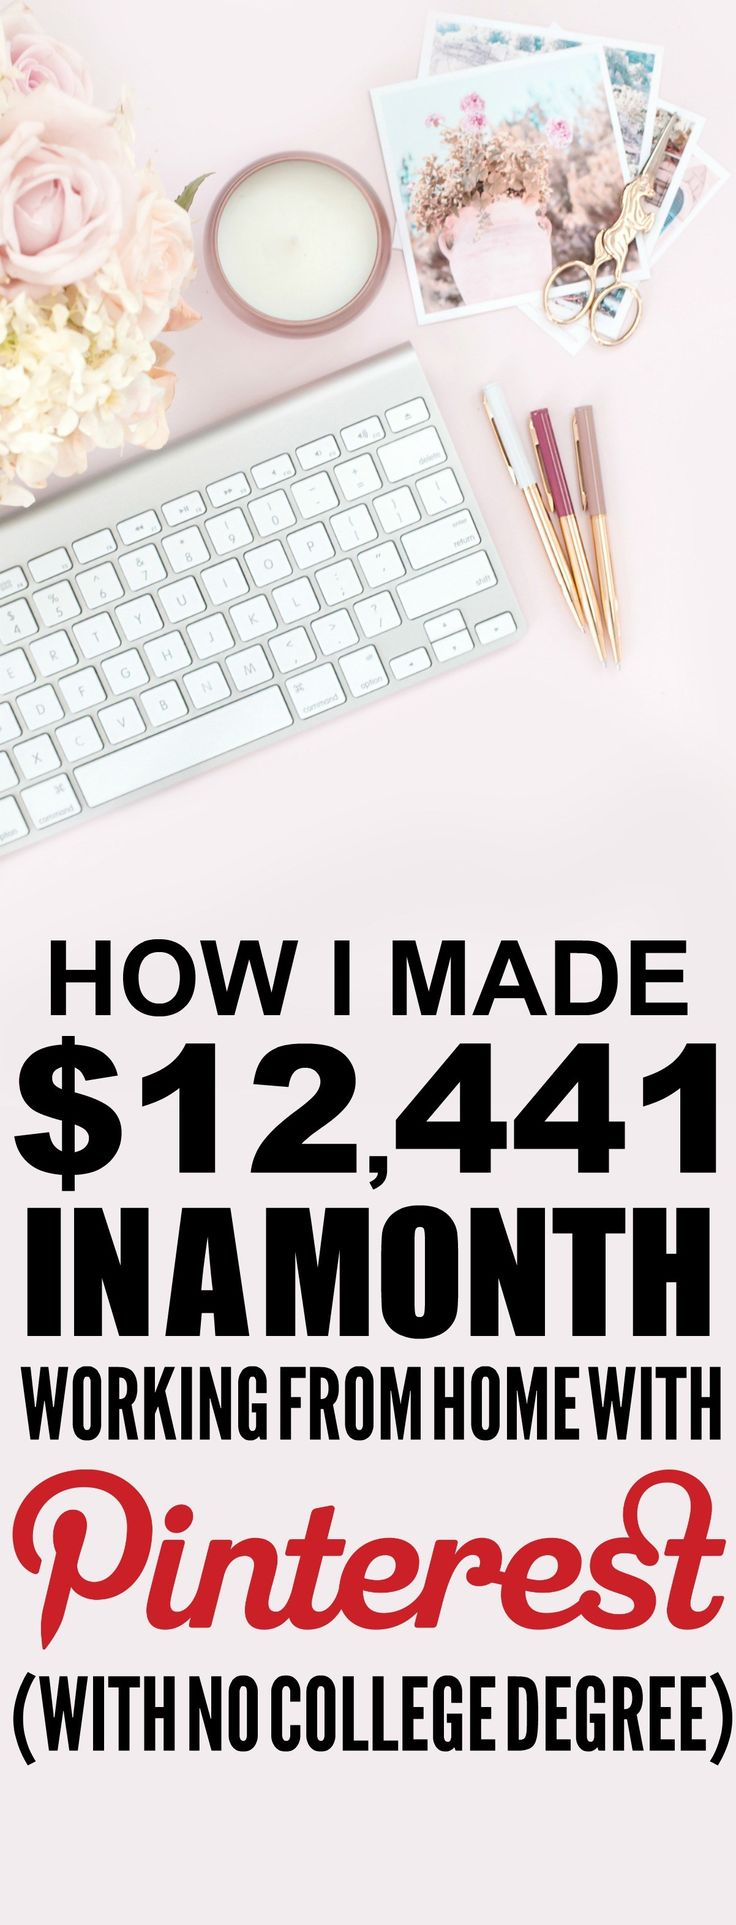 Please whichever good way will be helpful, i began making money with the program when I only had 1. https://flipboard.com/redirect?url=http%3A%2F%2Fhome.iudder.ru%2Fhow-to-earn-little-extra-money%2F&v=FAooUAUV_OgyAzi--sZm5JLBVh9ZBtoCEHyUaIKPhoMAAAFe6q1bUQ